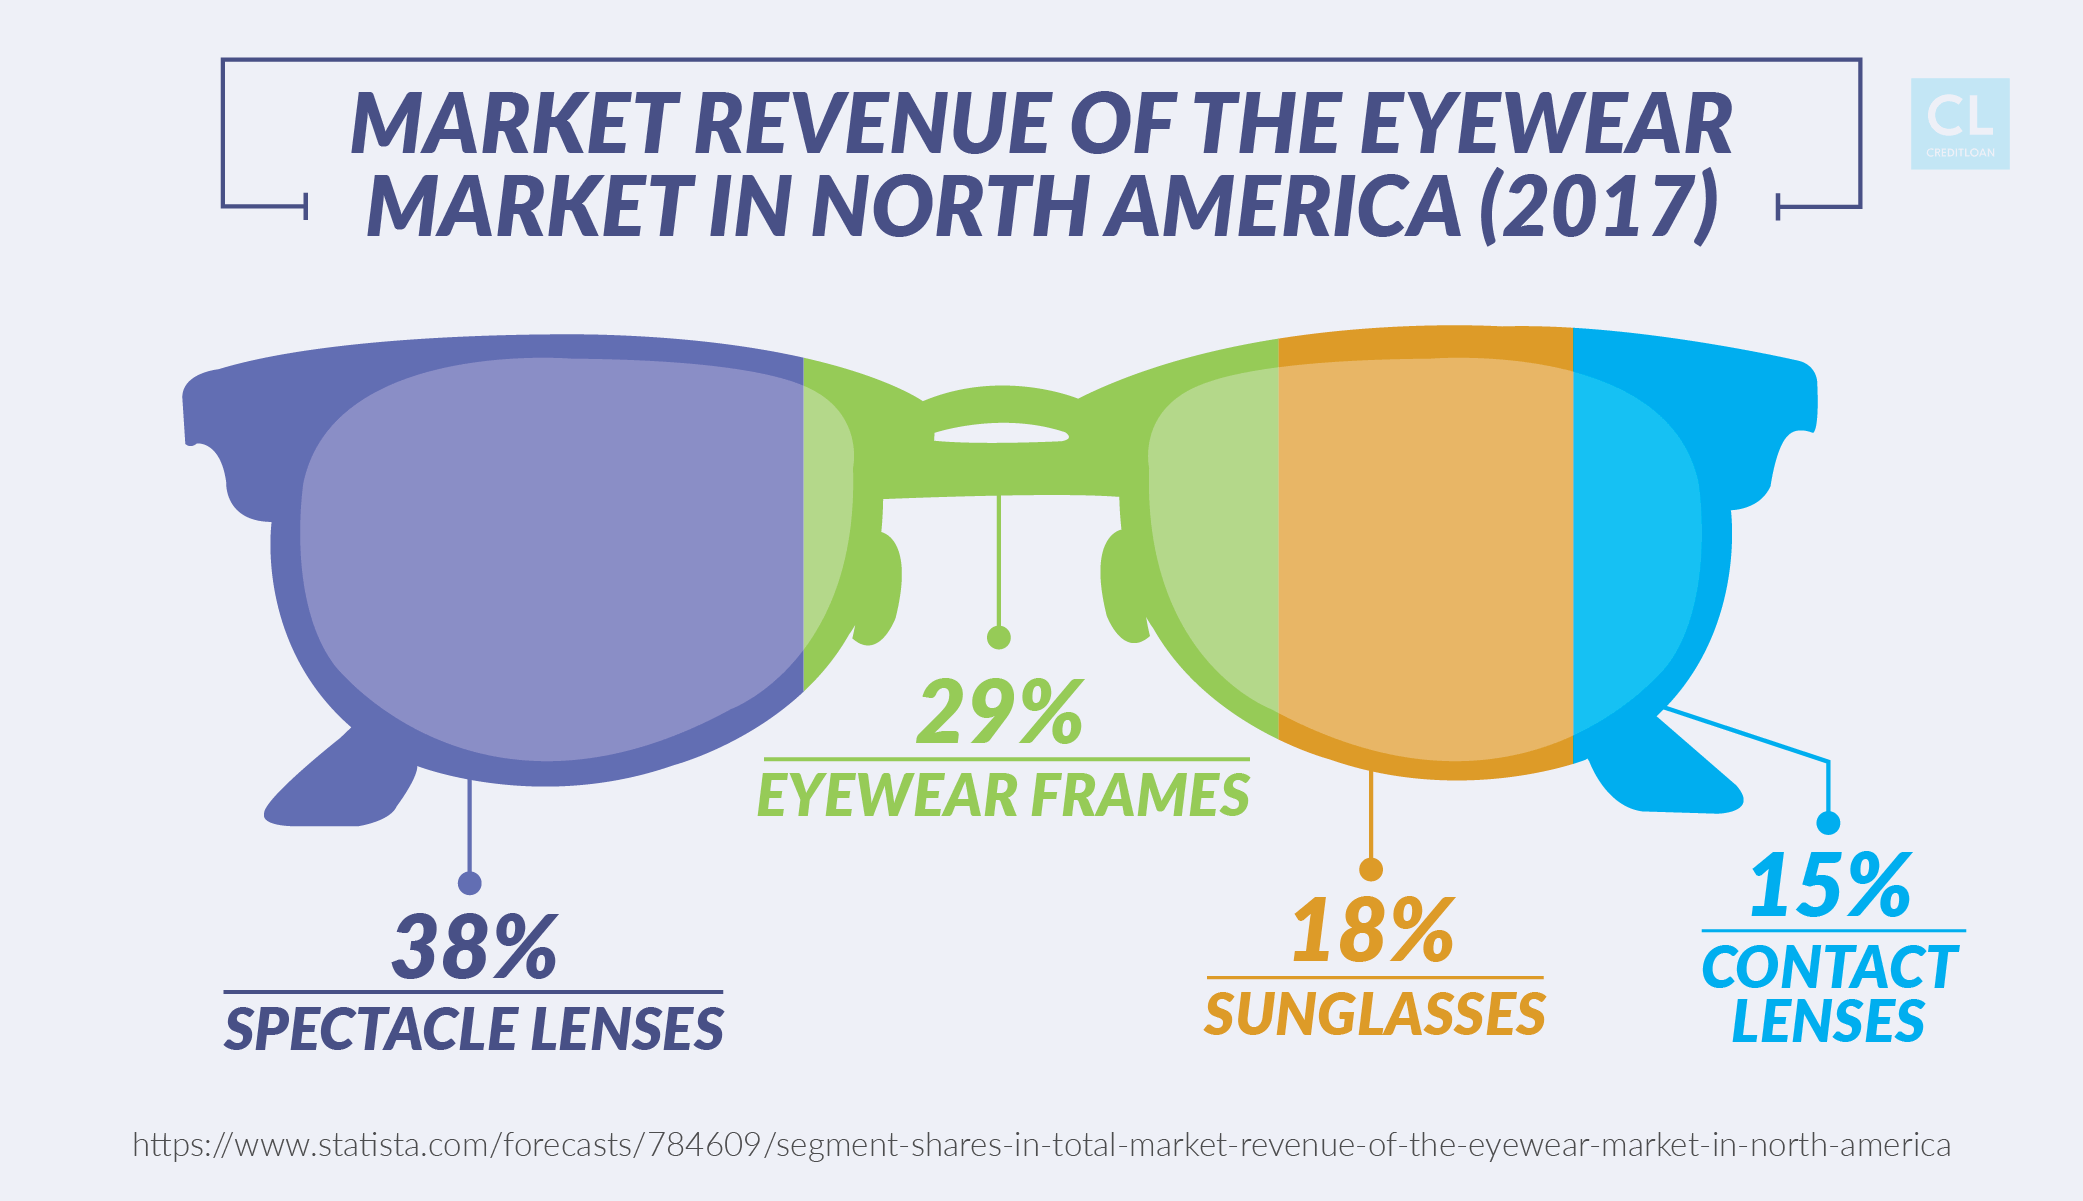 Market Revenue of the Eyewear Market in North America